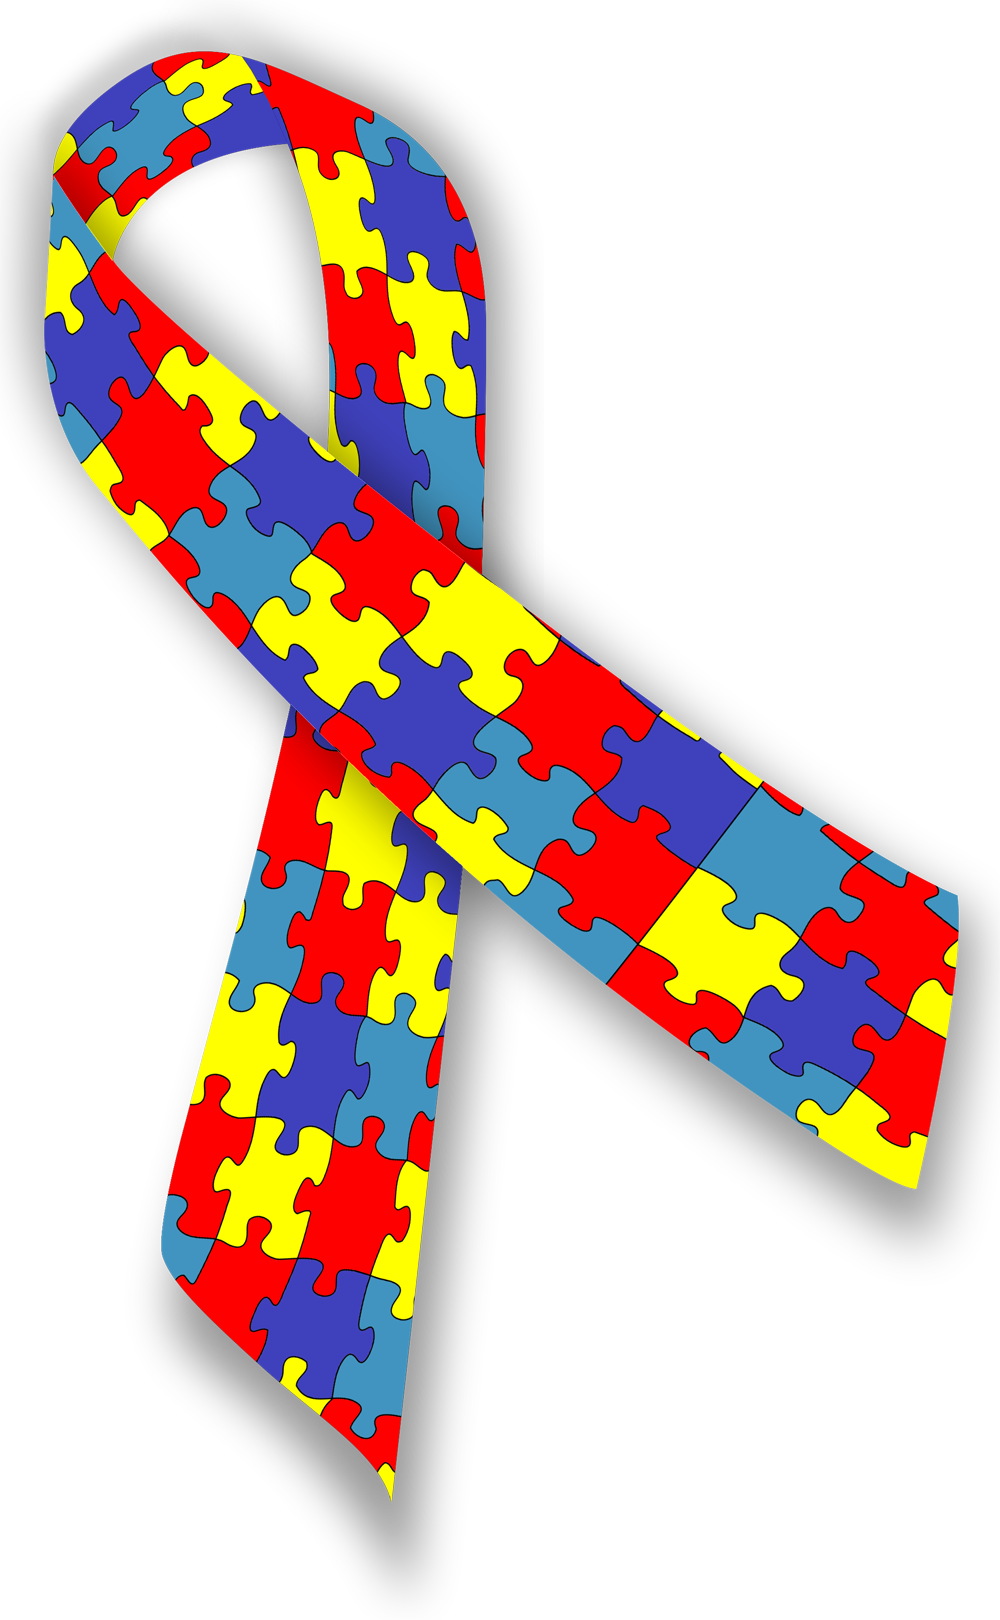 Autism spectrum - Wikipedia